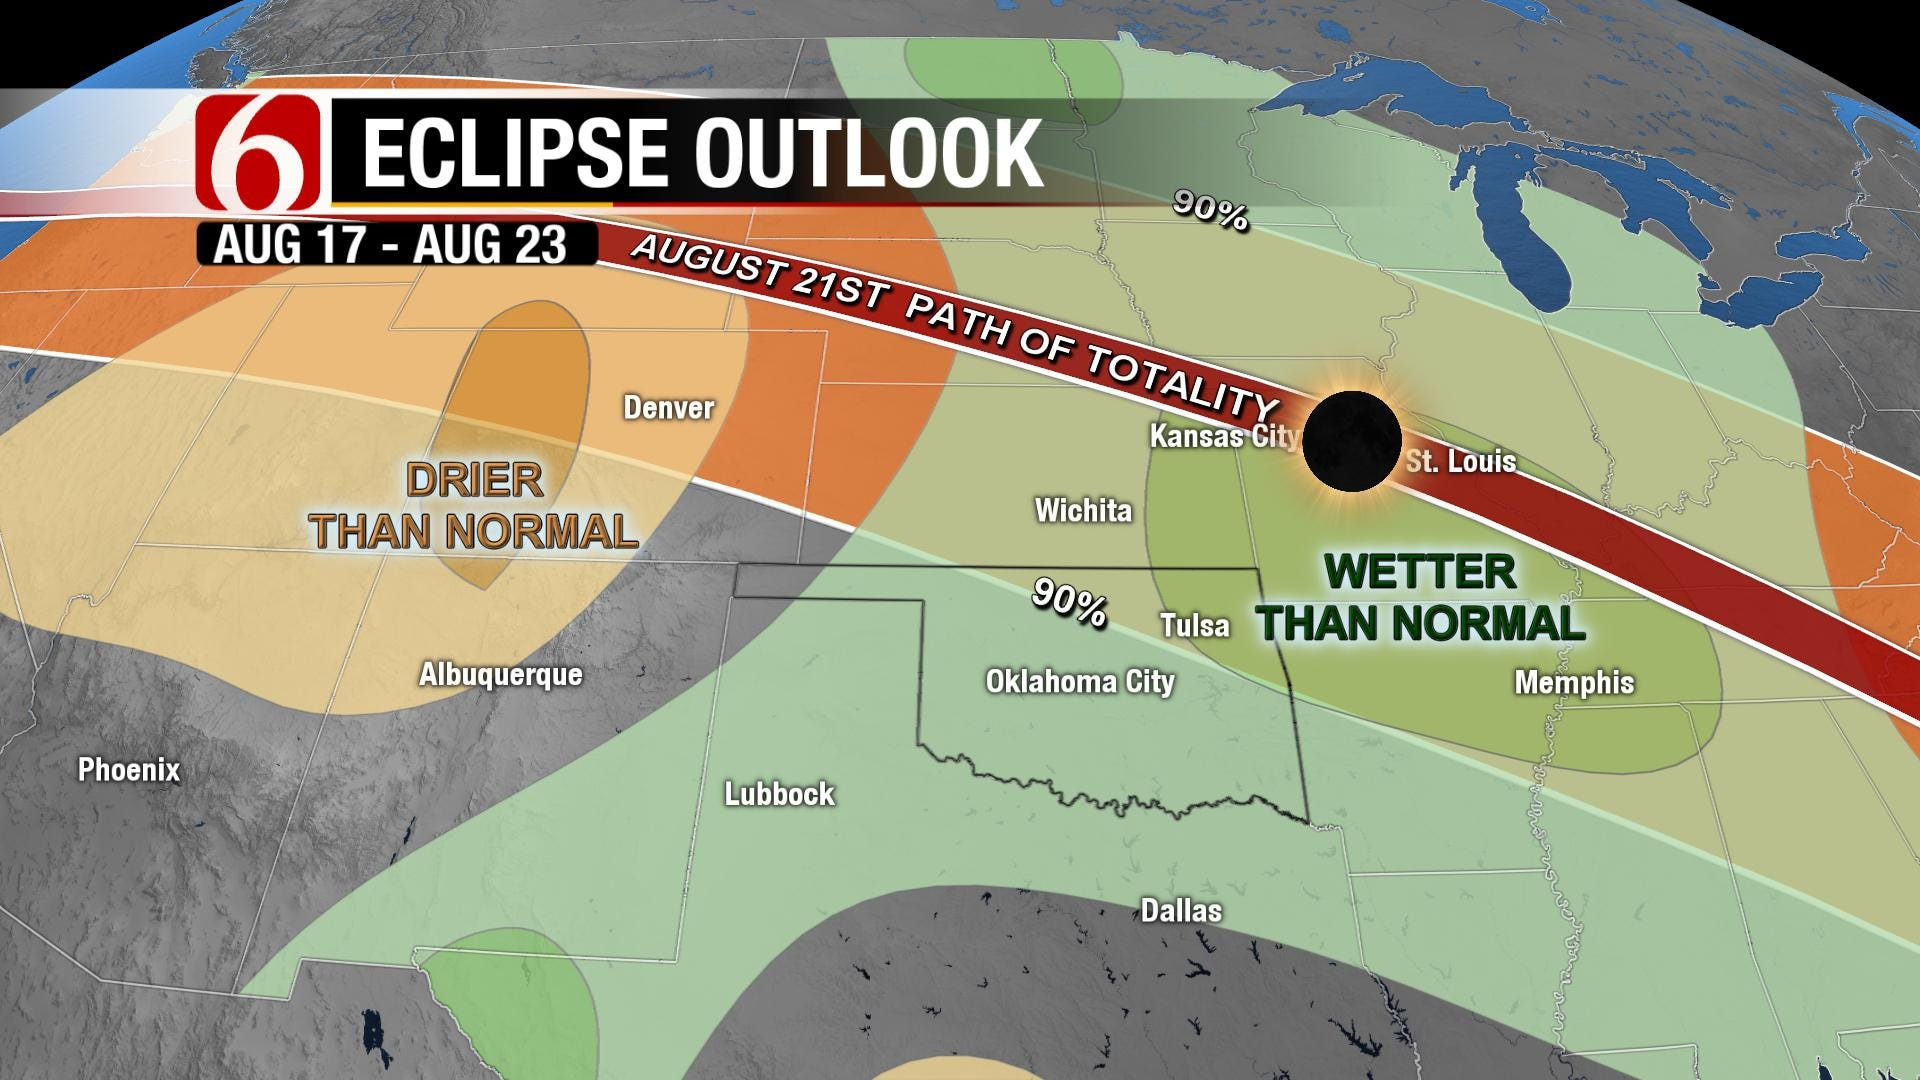 In the Wake of Weekend Tornadoes, More Inclement Weather Arrives